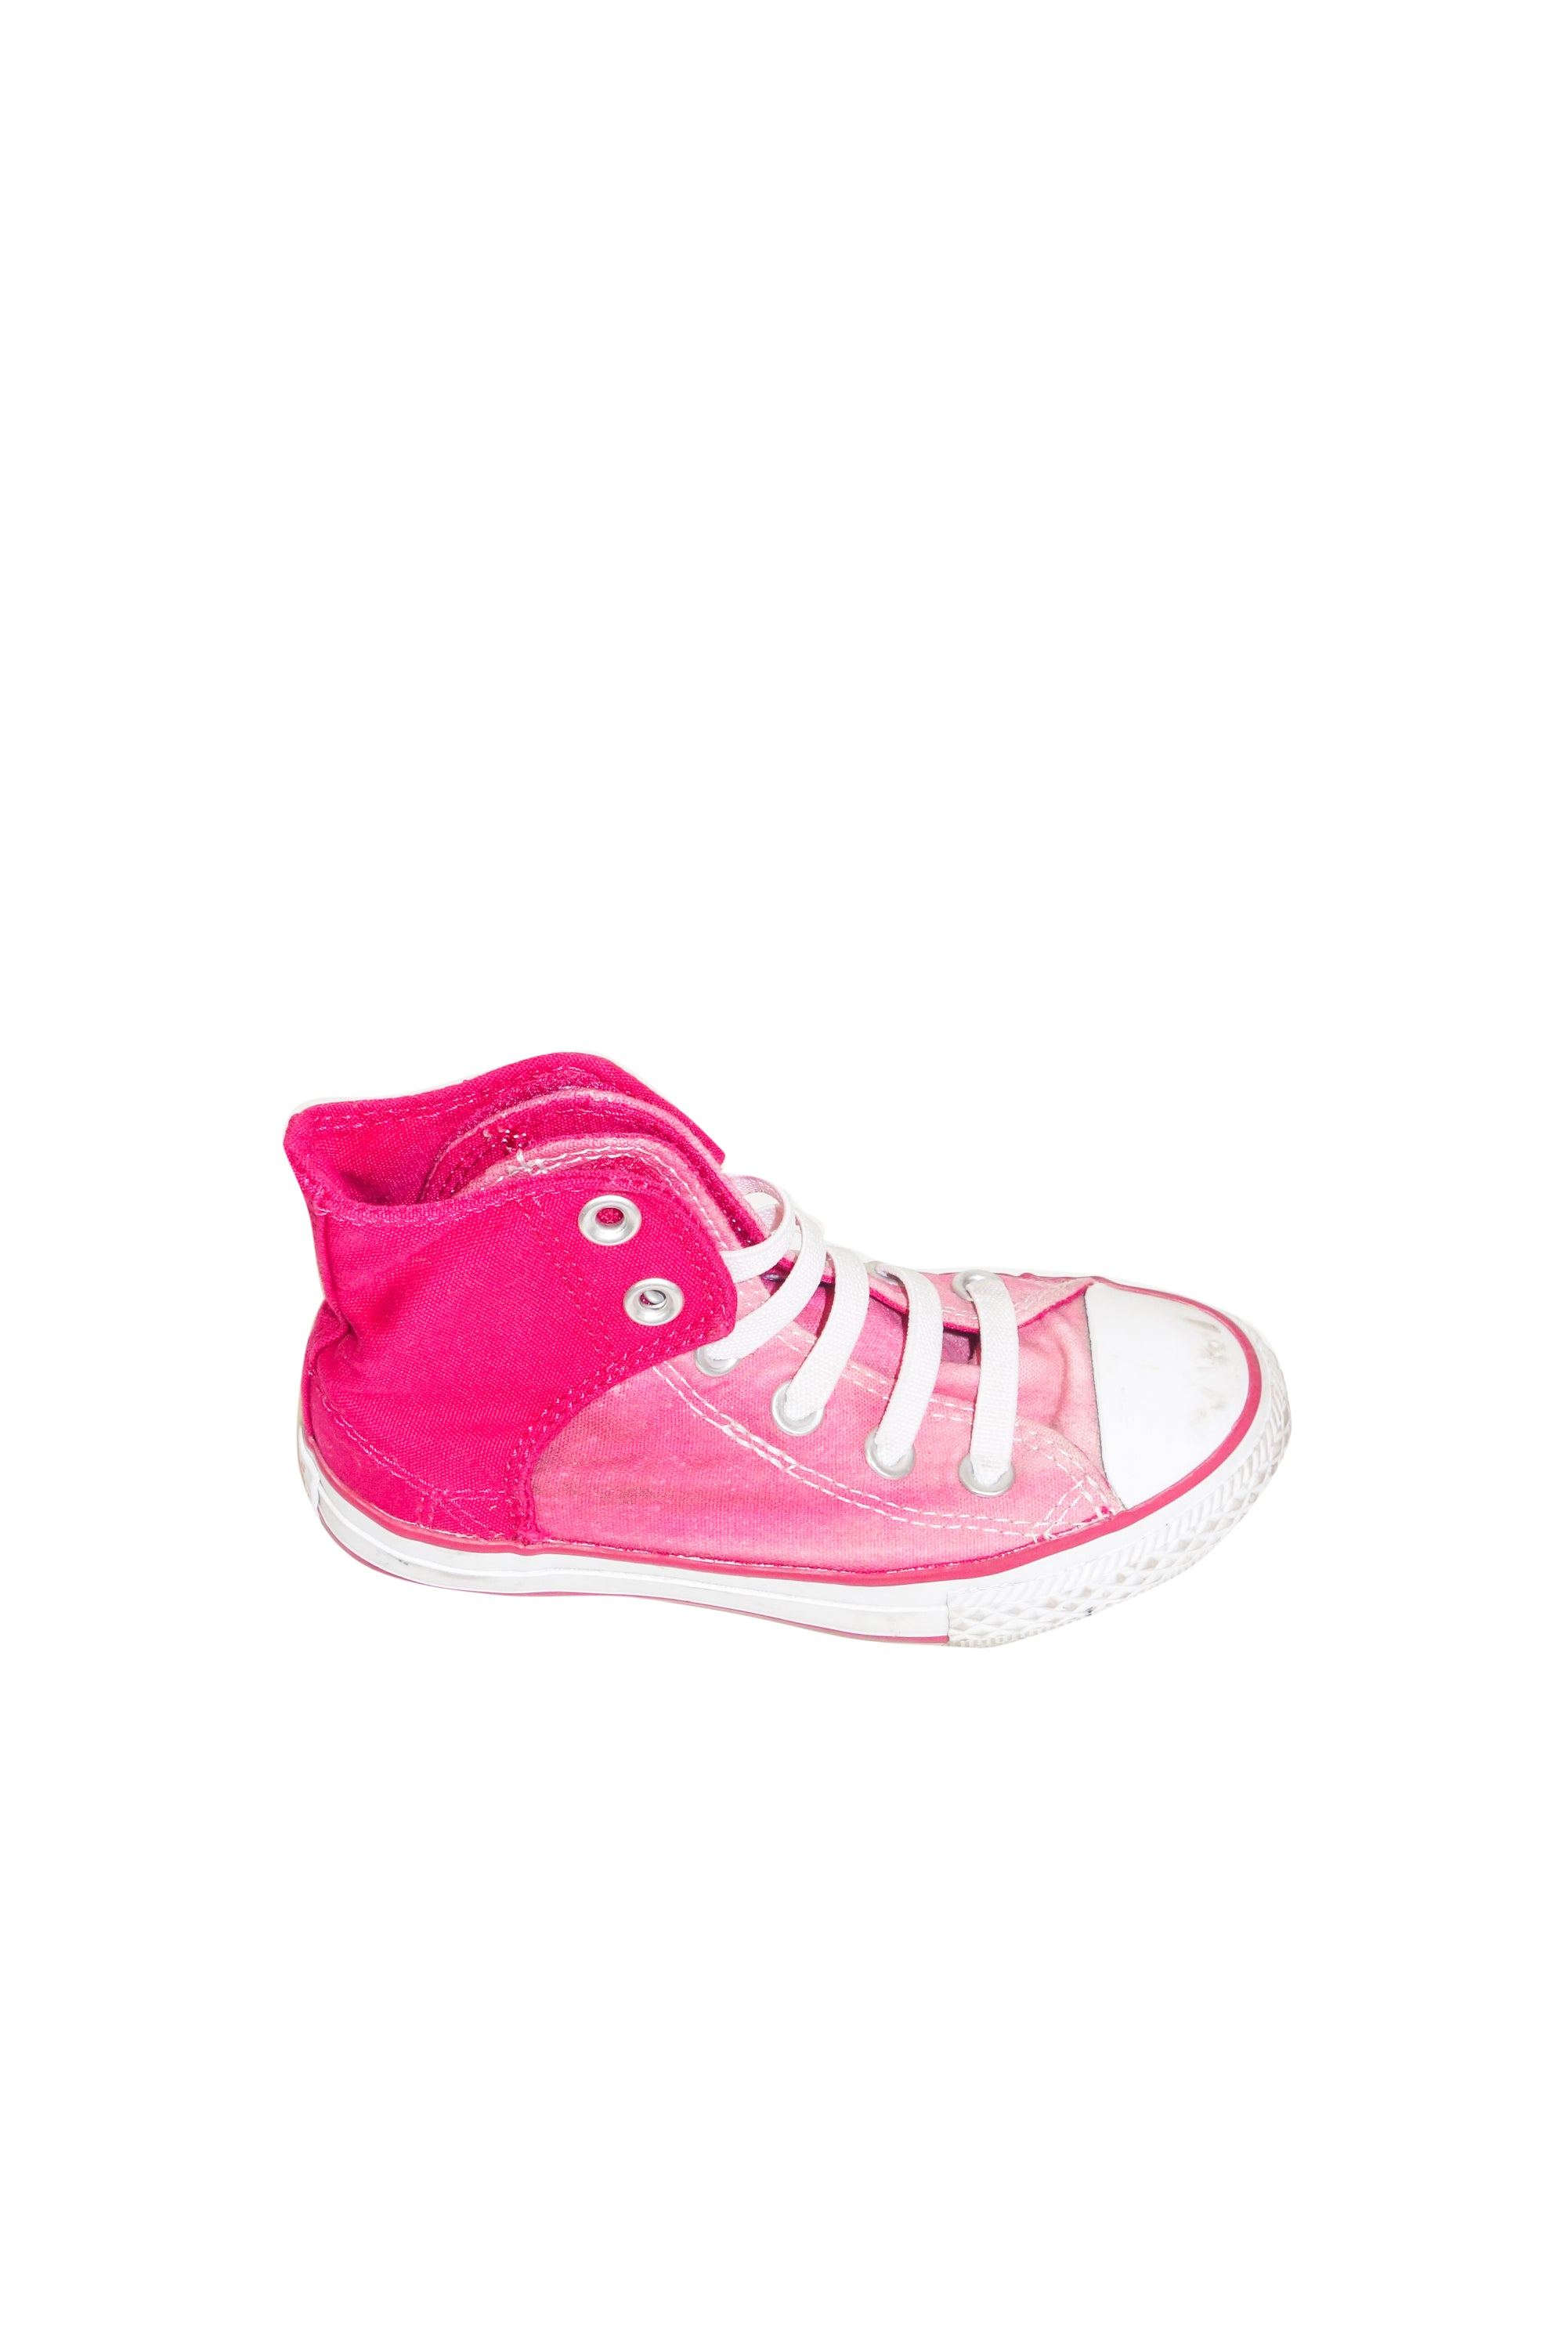 10013405 Converse Kids ~ Shoes 5T (EU 28) at Retykle